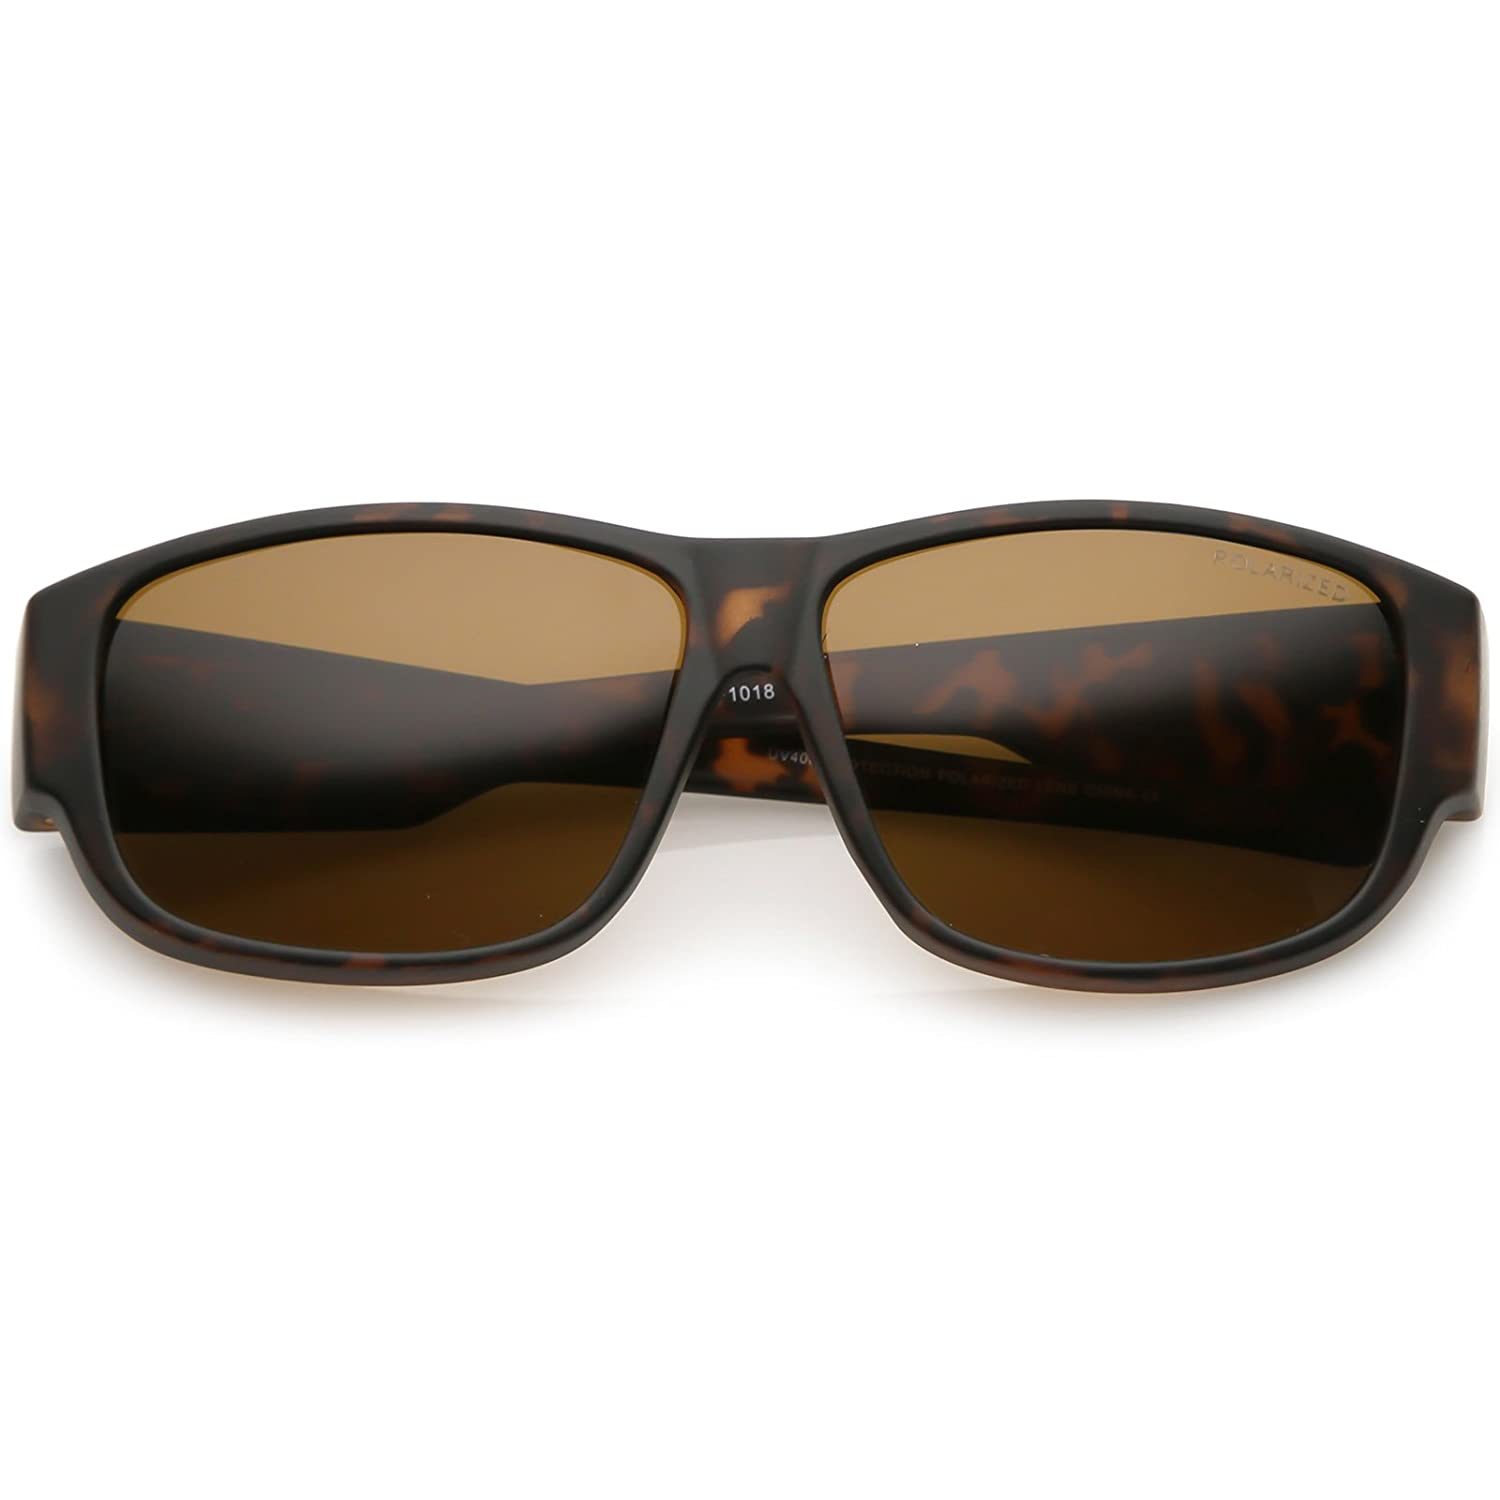 553927539c6 zeroUV - Thick Frame Wide Arms Square Polarized Lens Horn Rimmed Sunglasses  57mm